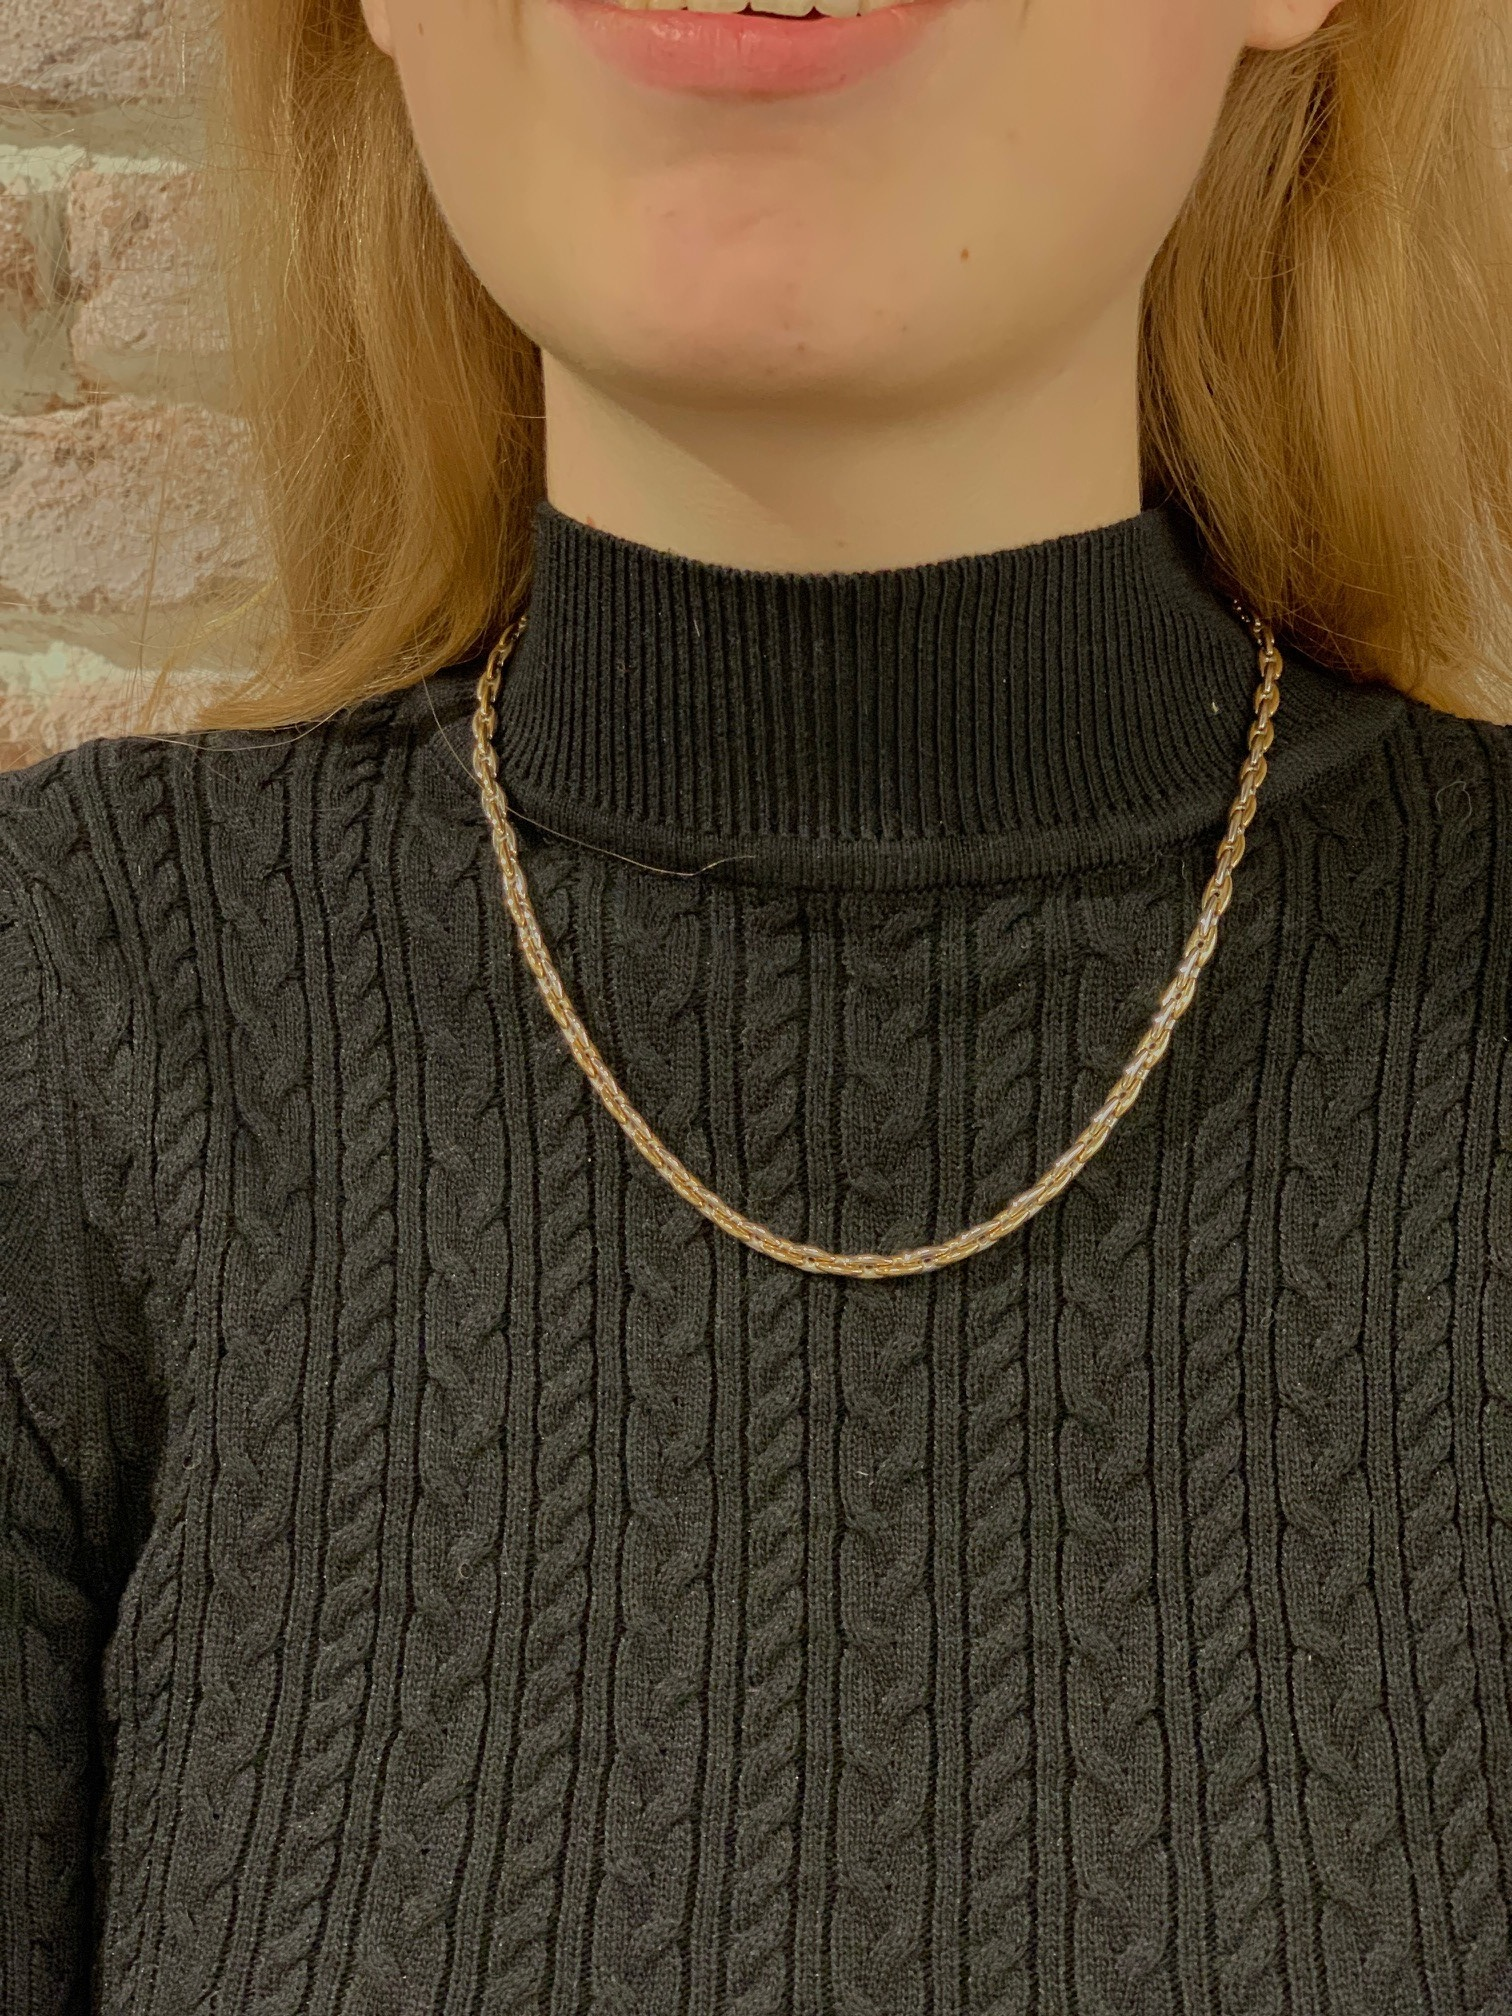 ROEMER ROEMER bicolor collier